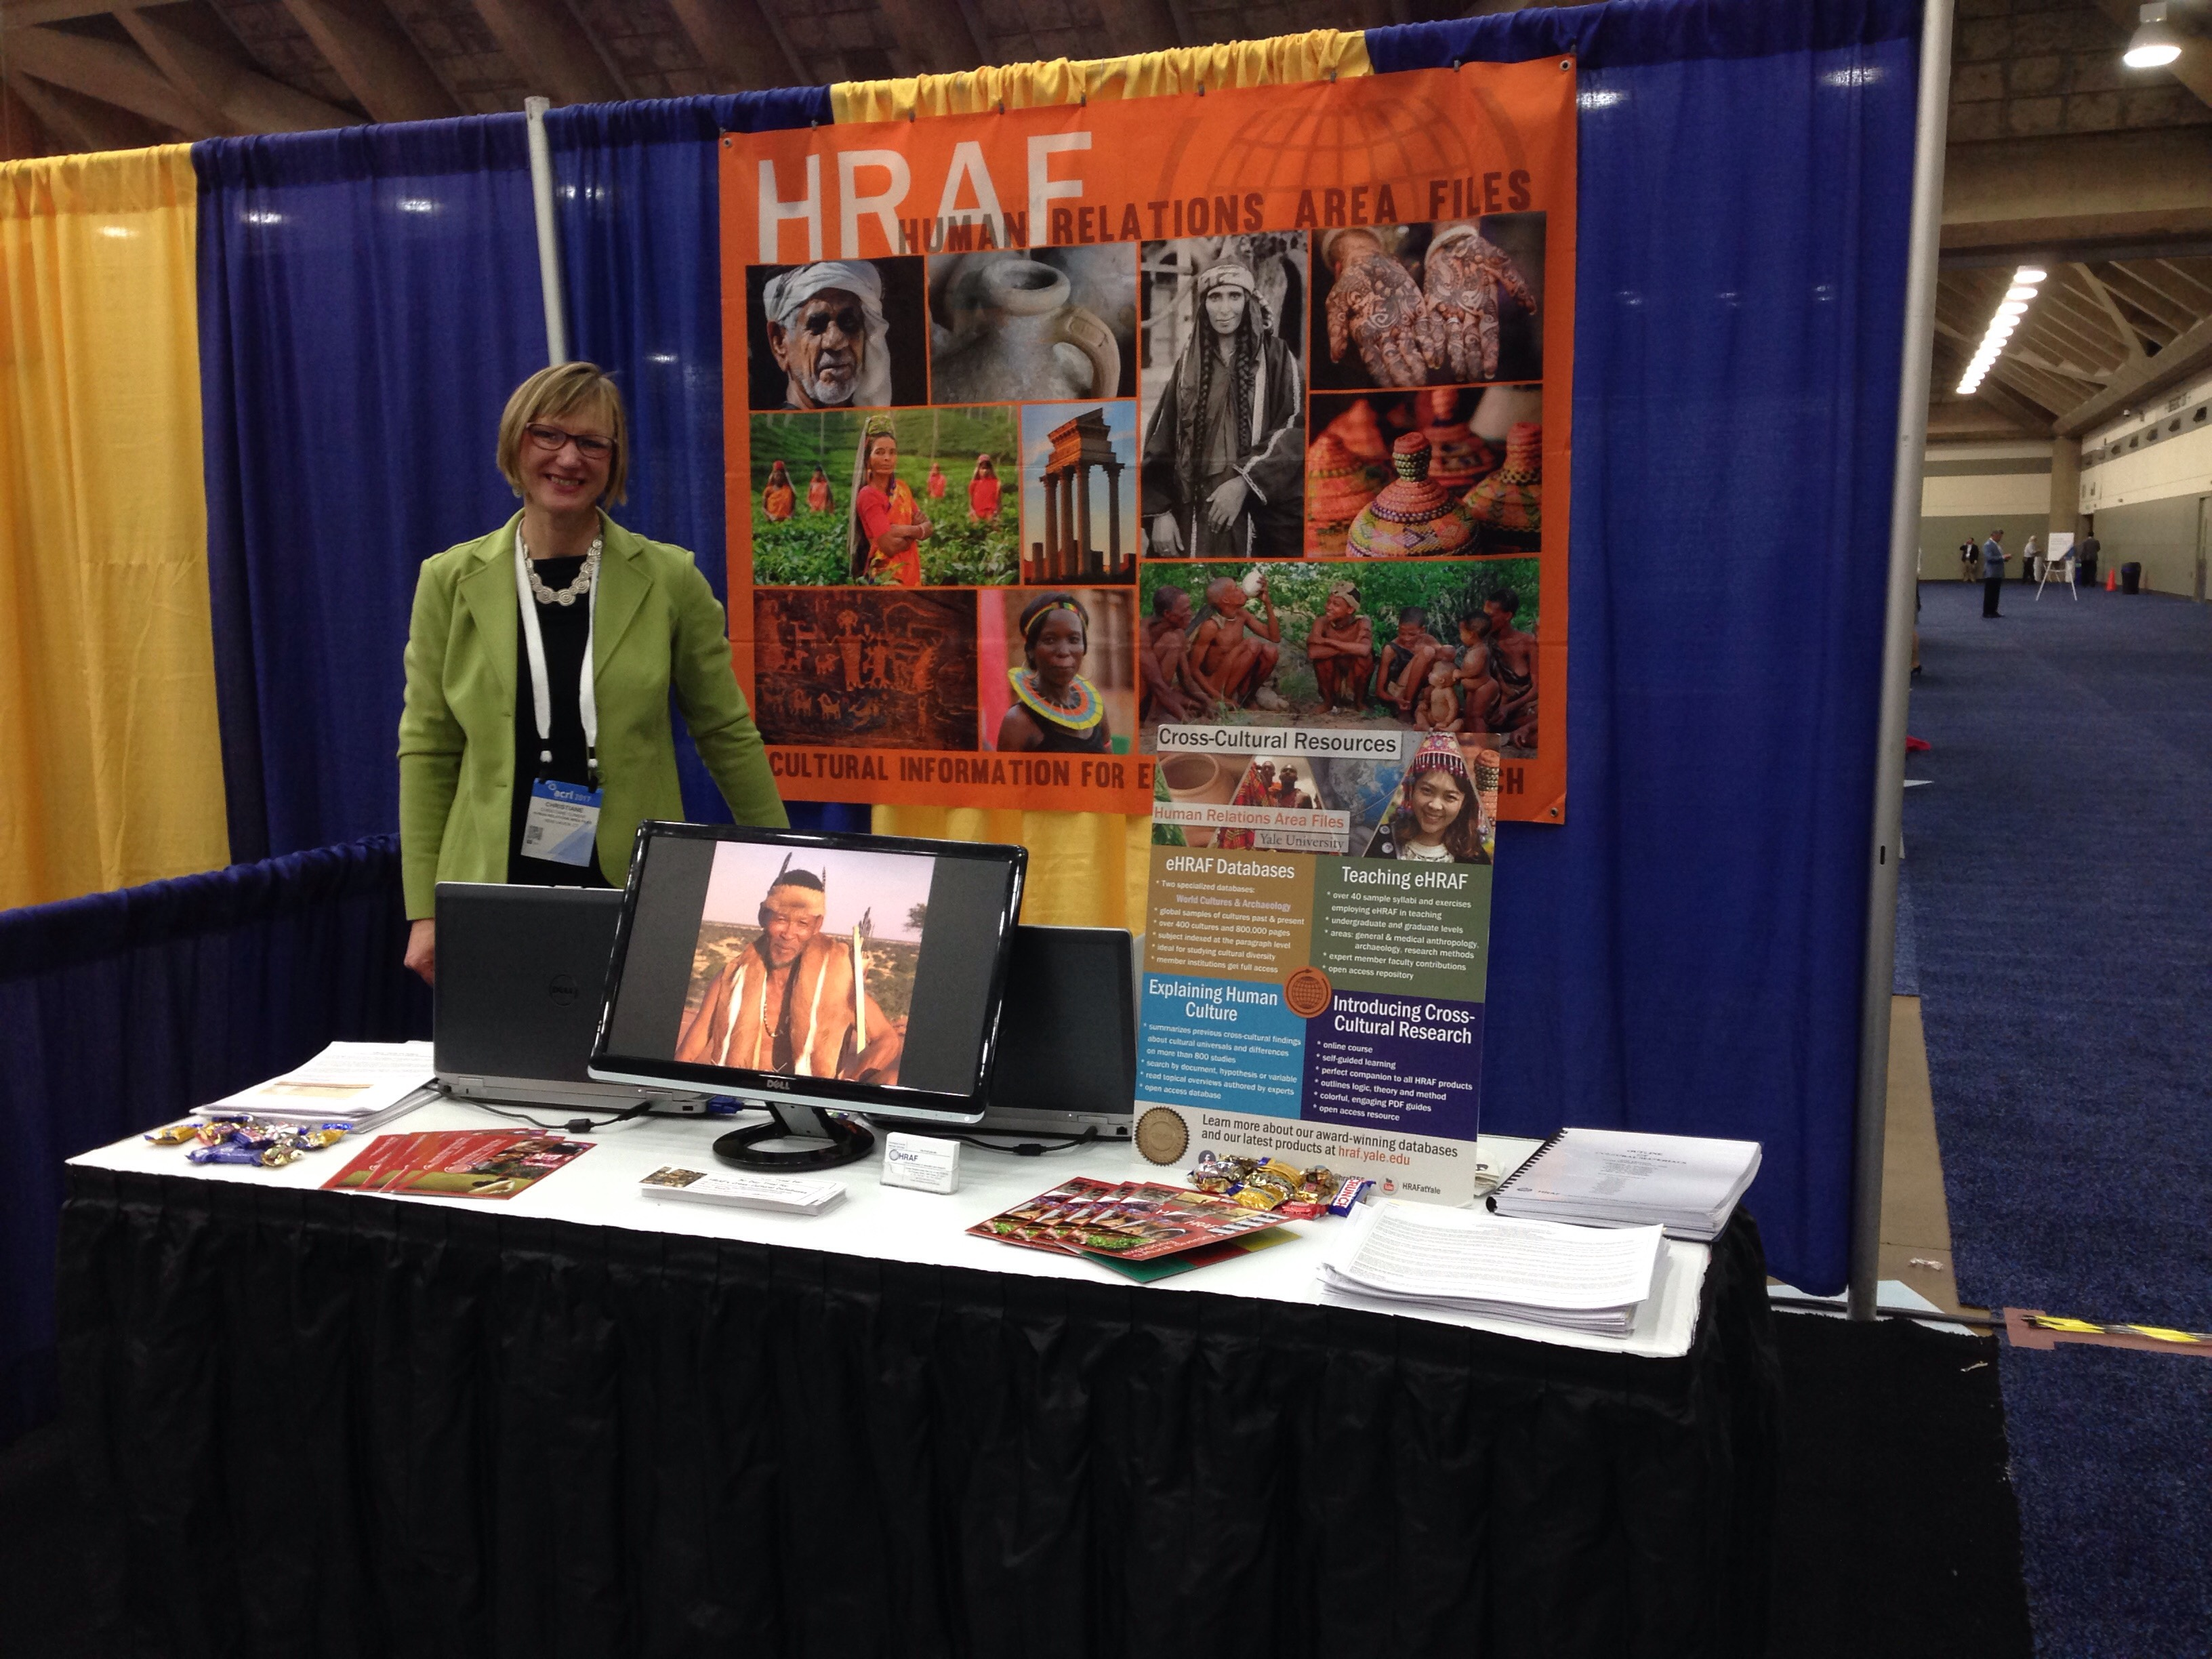 HRAF booth at 2017 ACRL Conference in Baltimore, MD